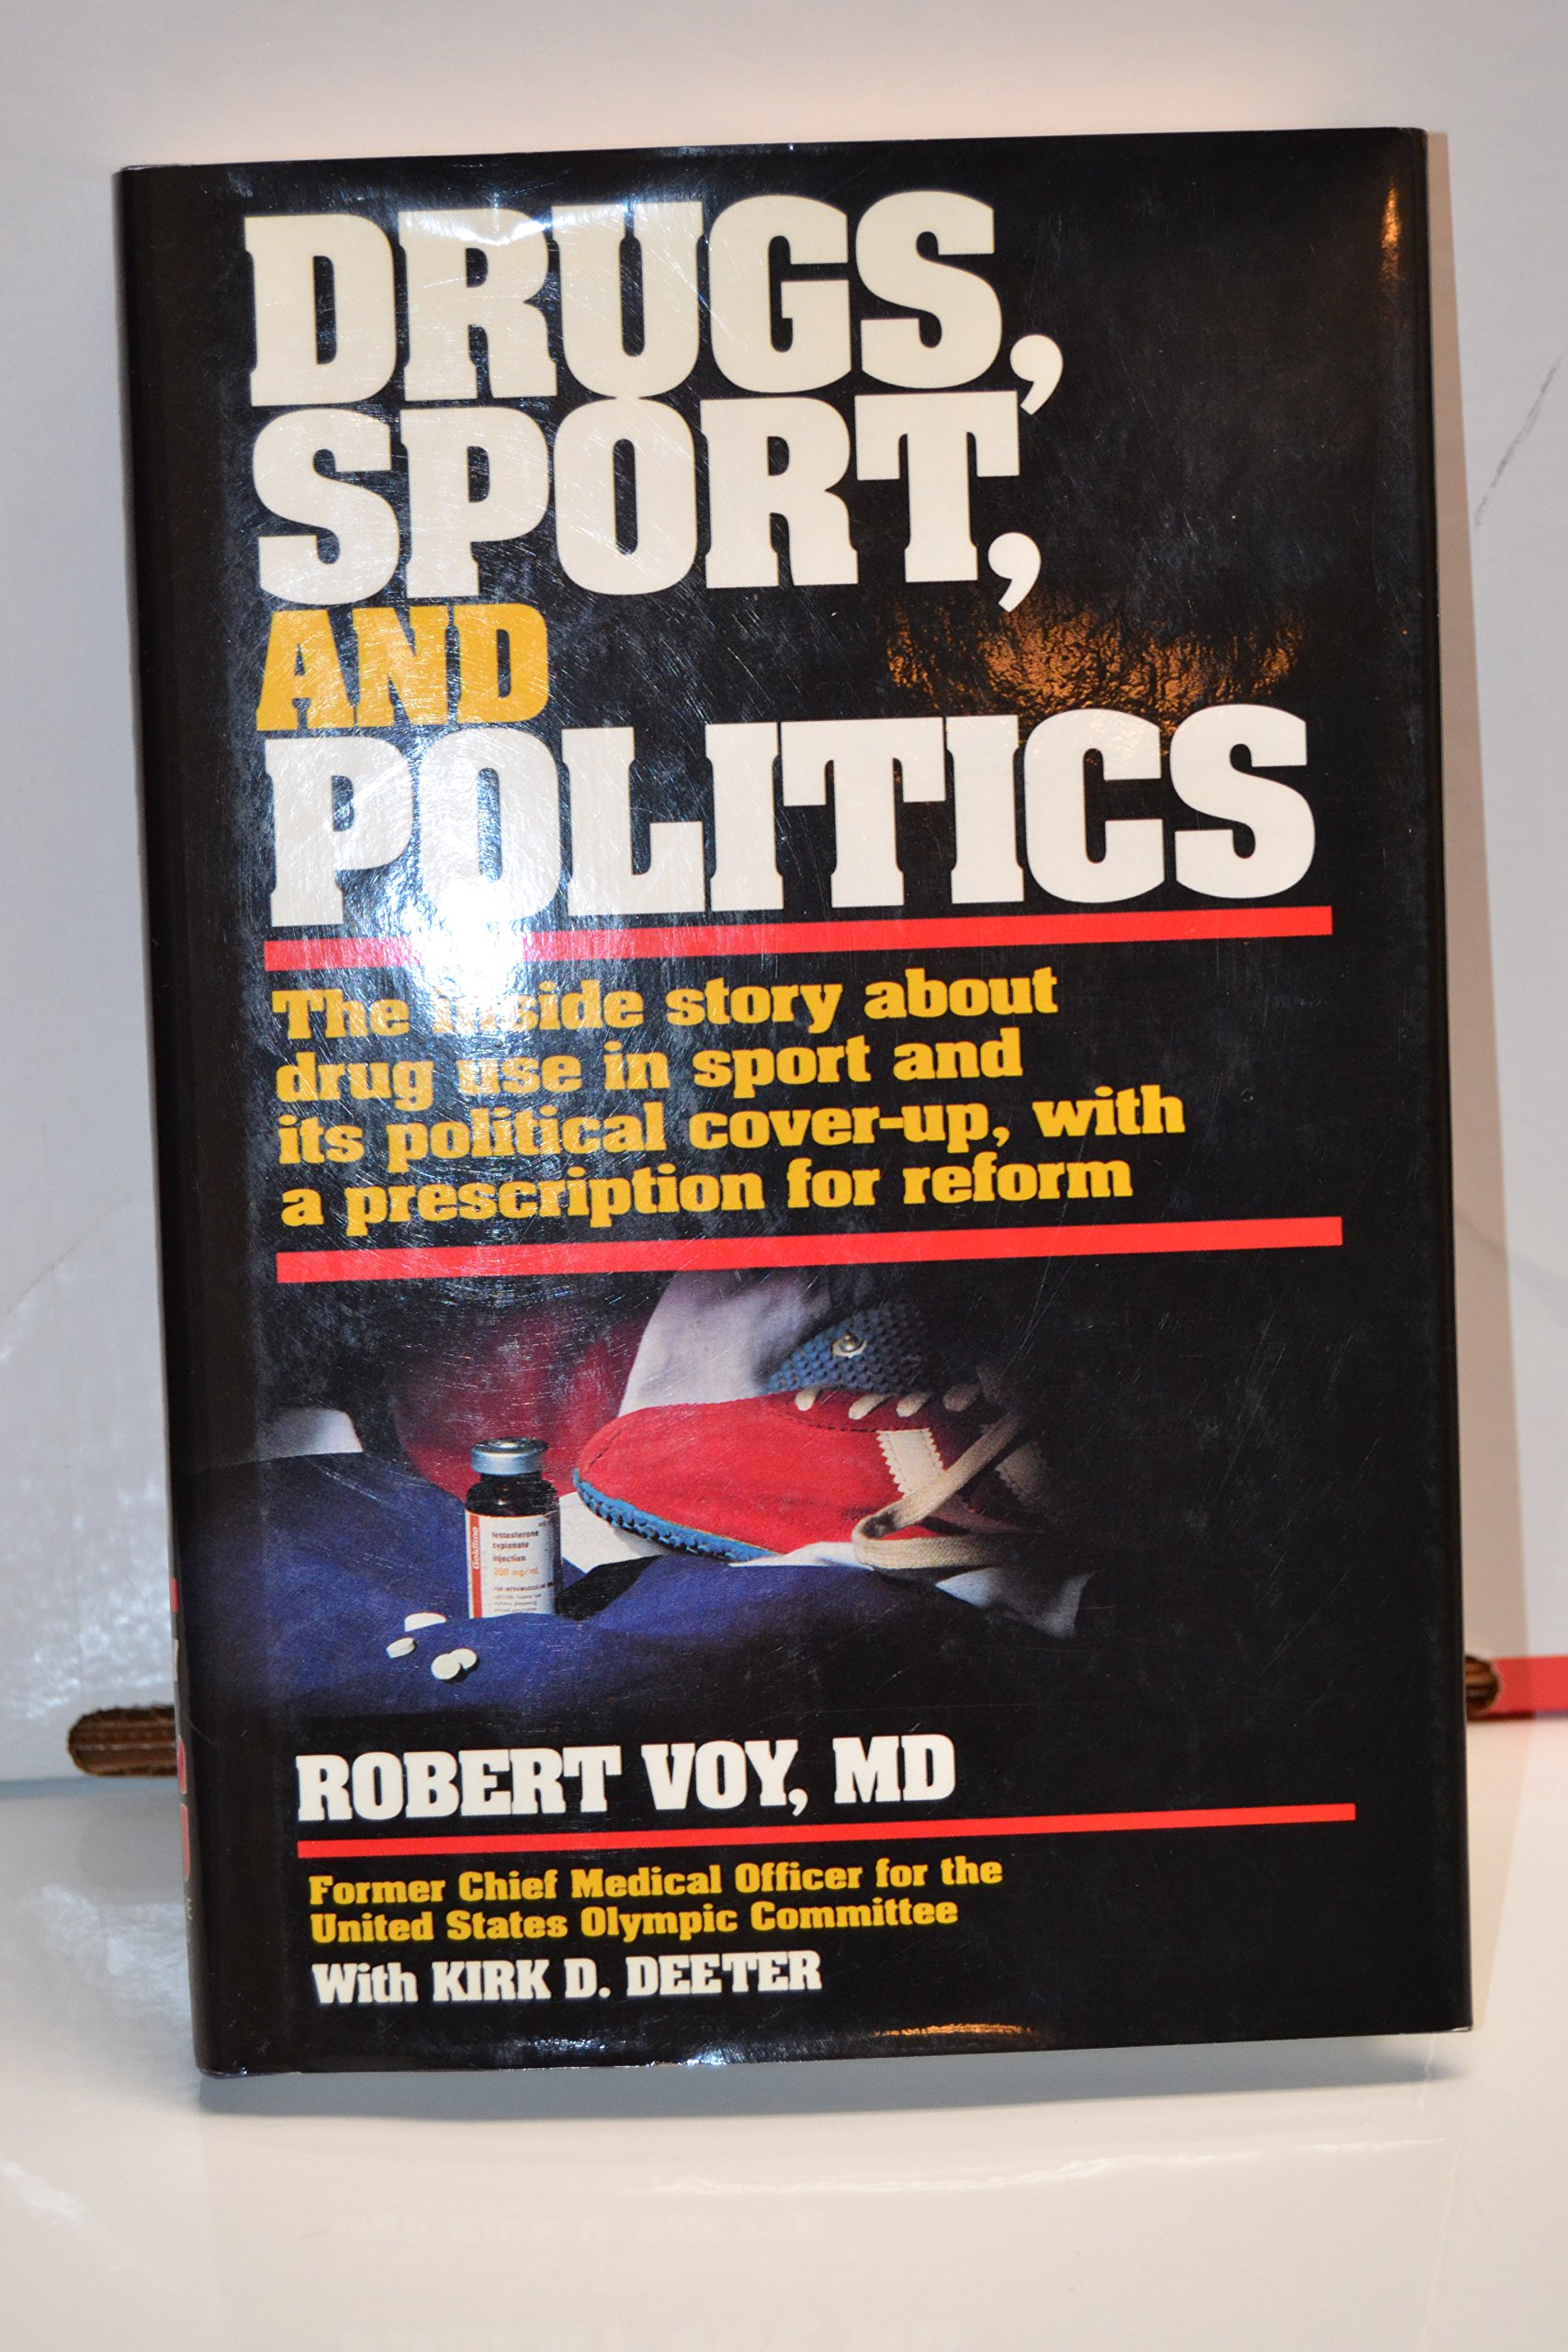 drugs sport and politics robert voy kirk d deeter drugs sport and politics robert voy kirk d deeter 9780880114097 com books